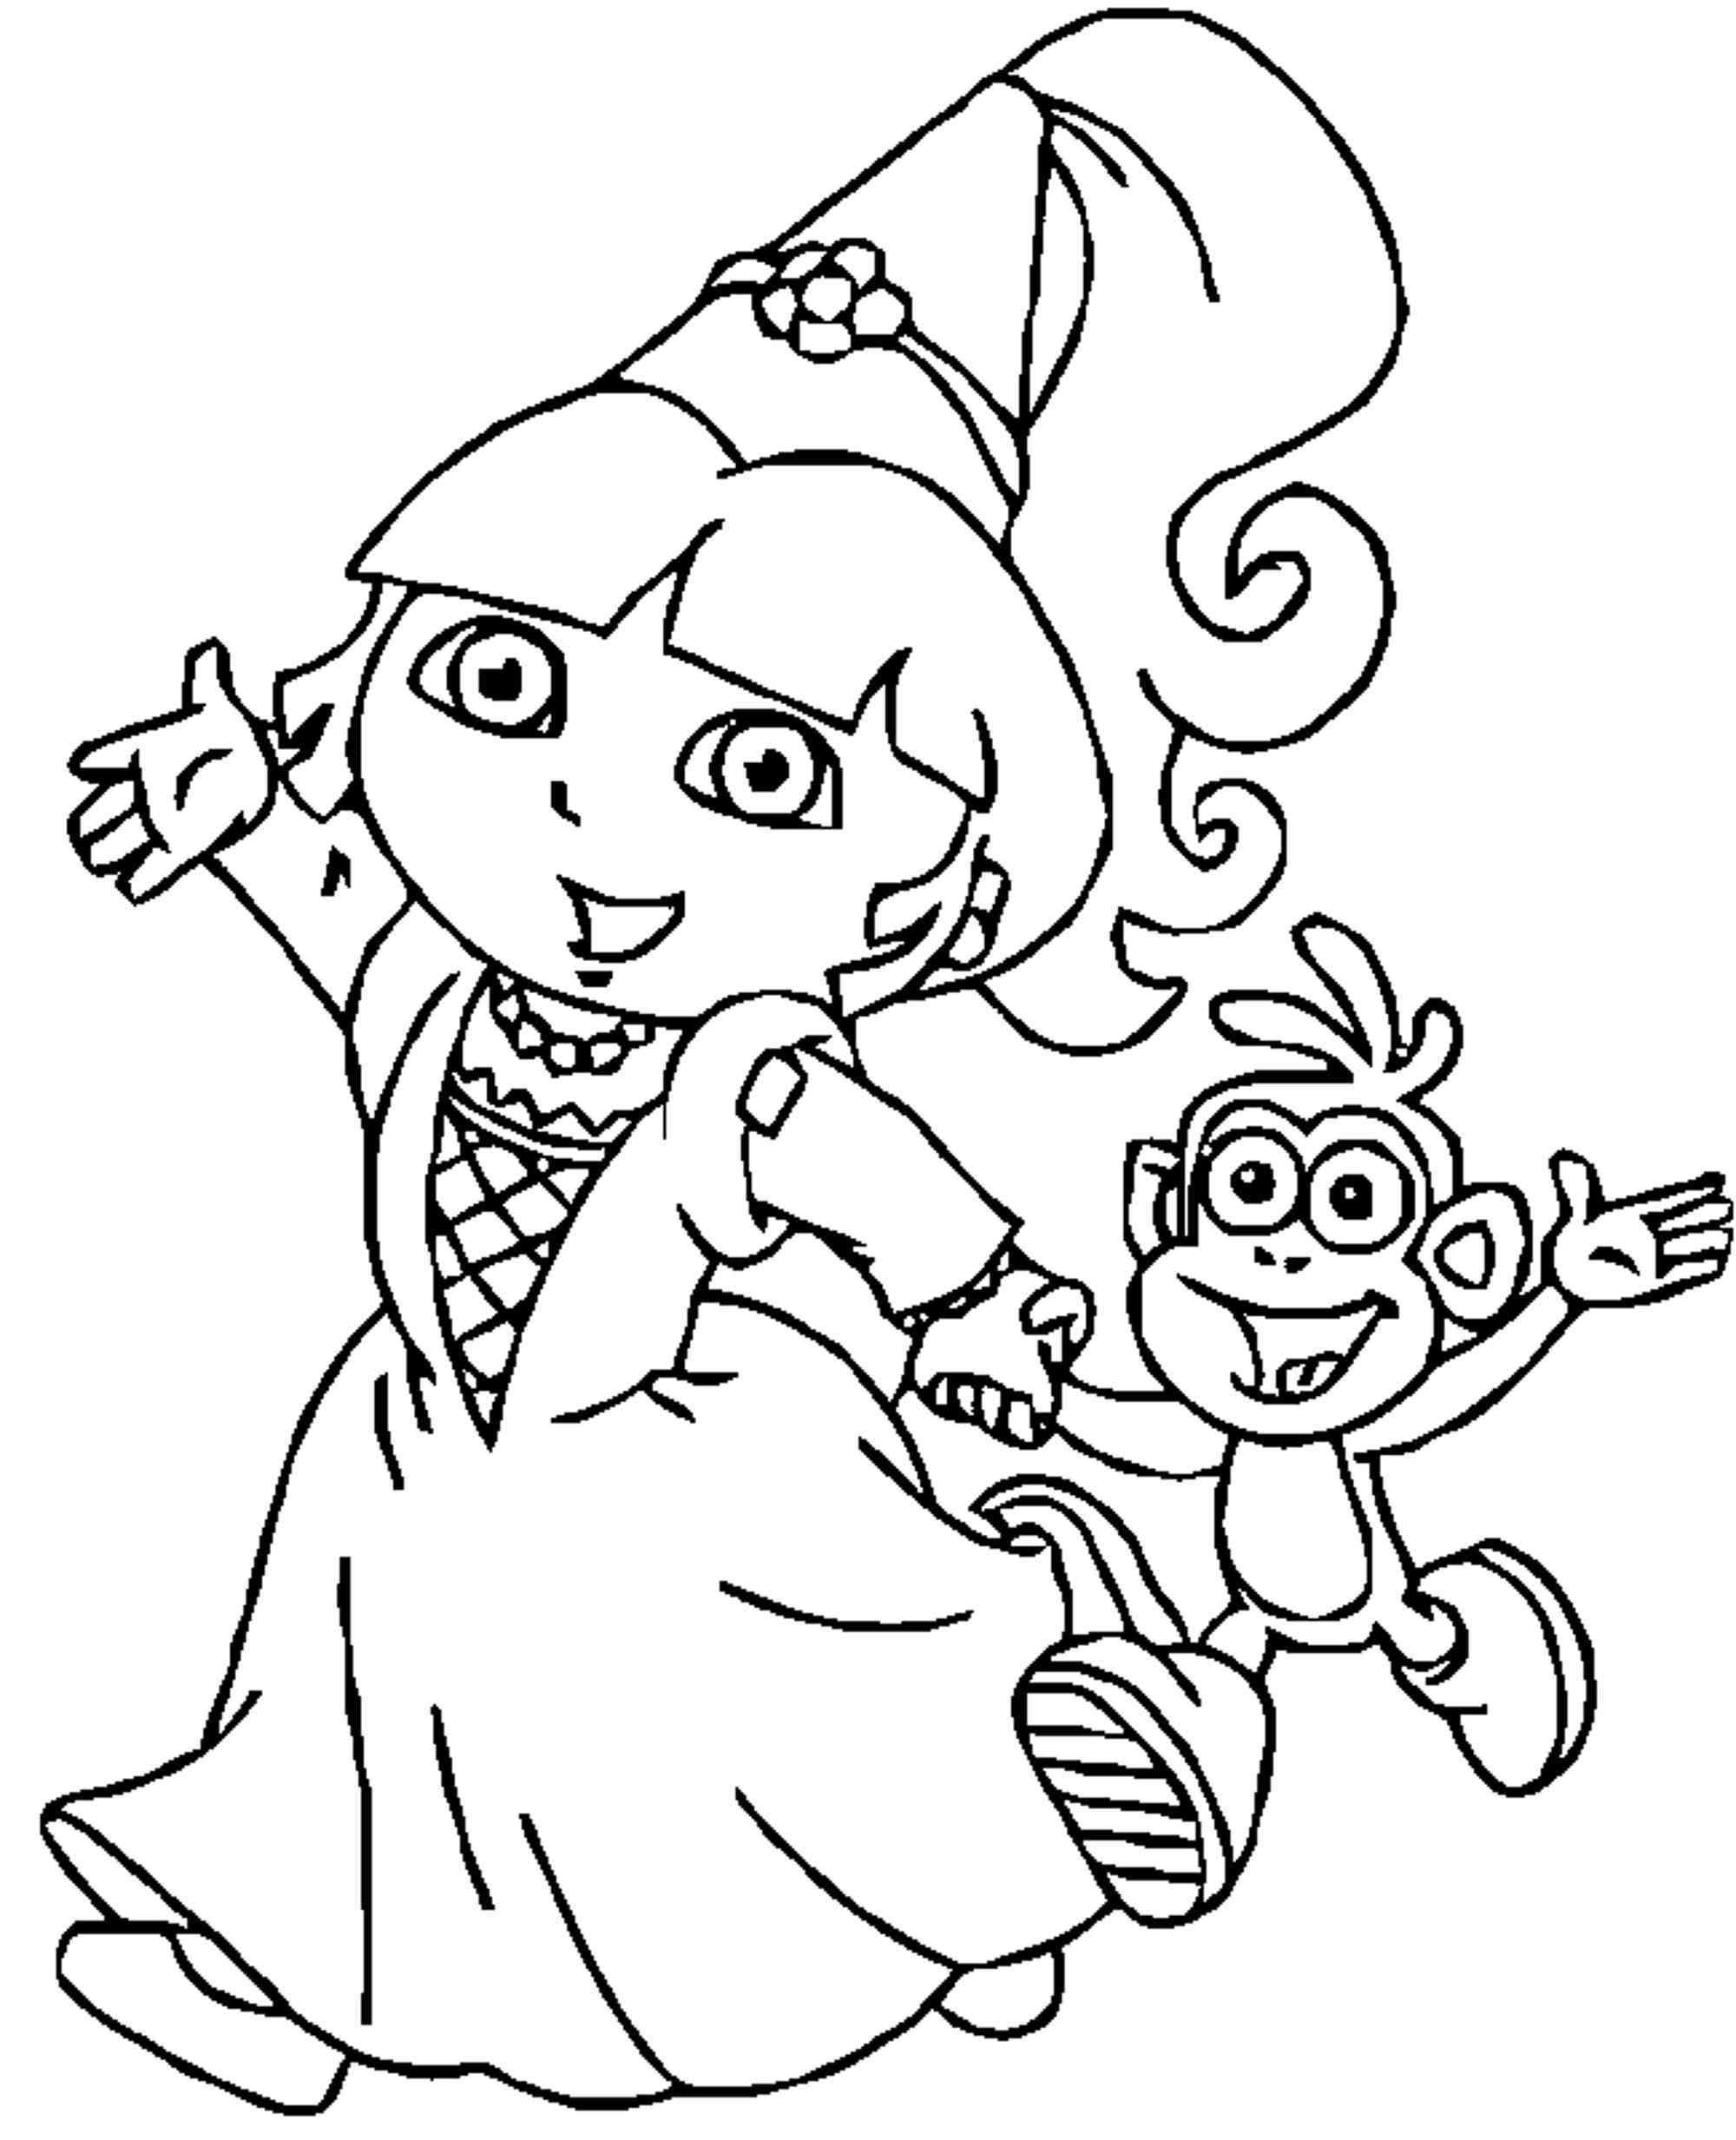 dora coloring pages free printable free printable dora the explorer coloring pages for kids free printable pages dora coloring